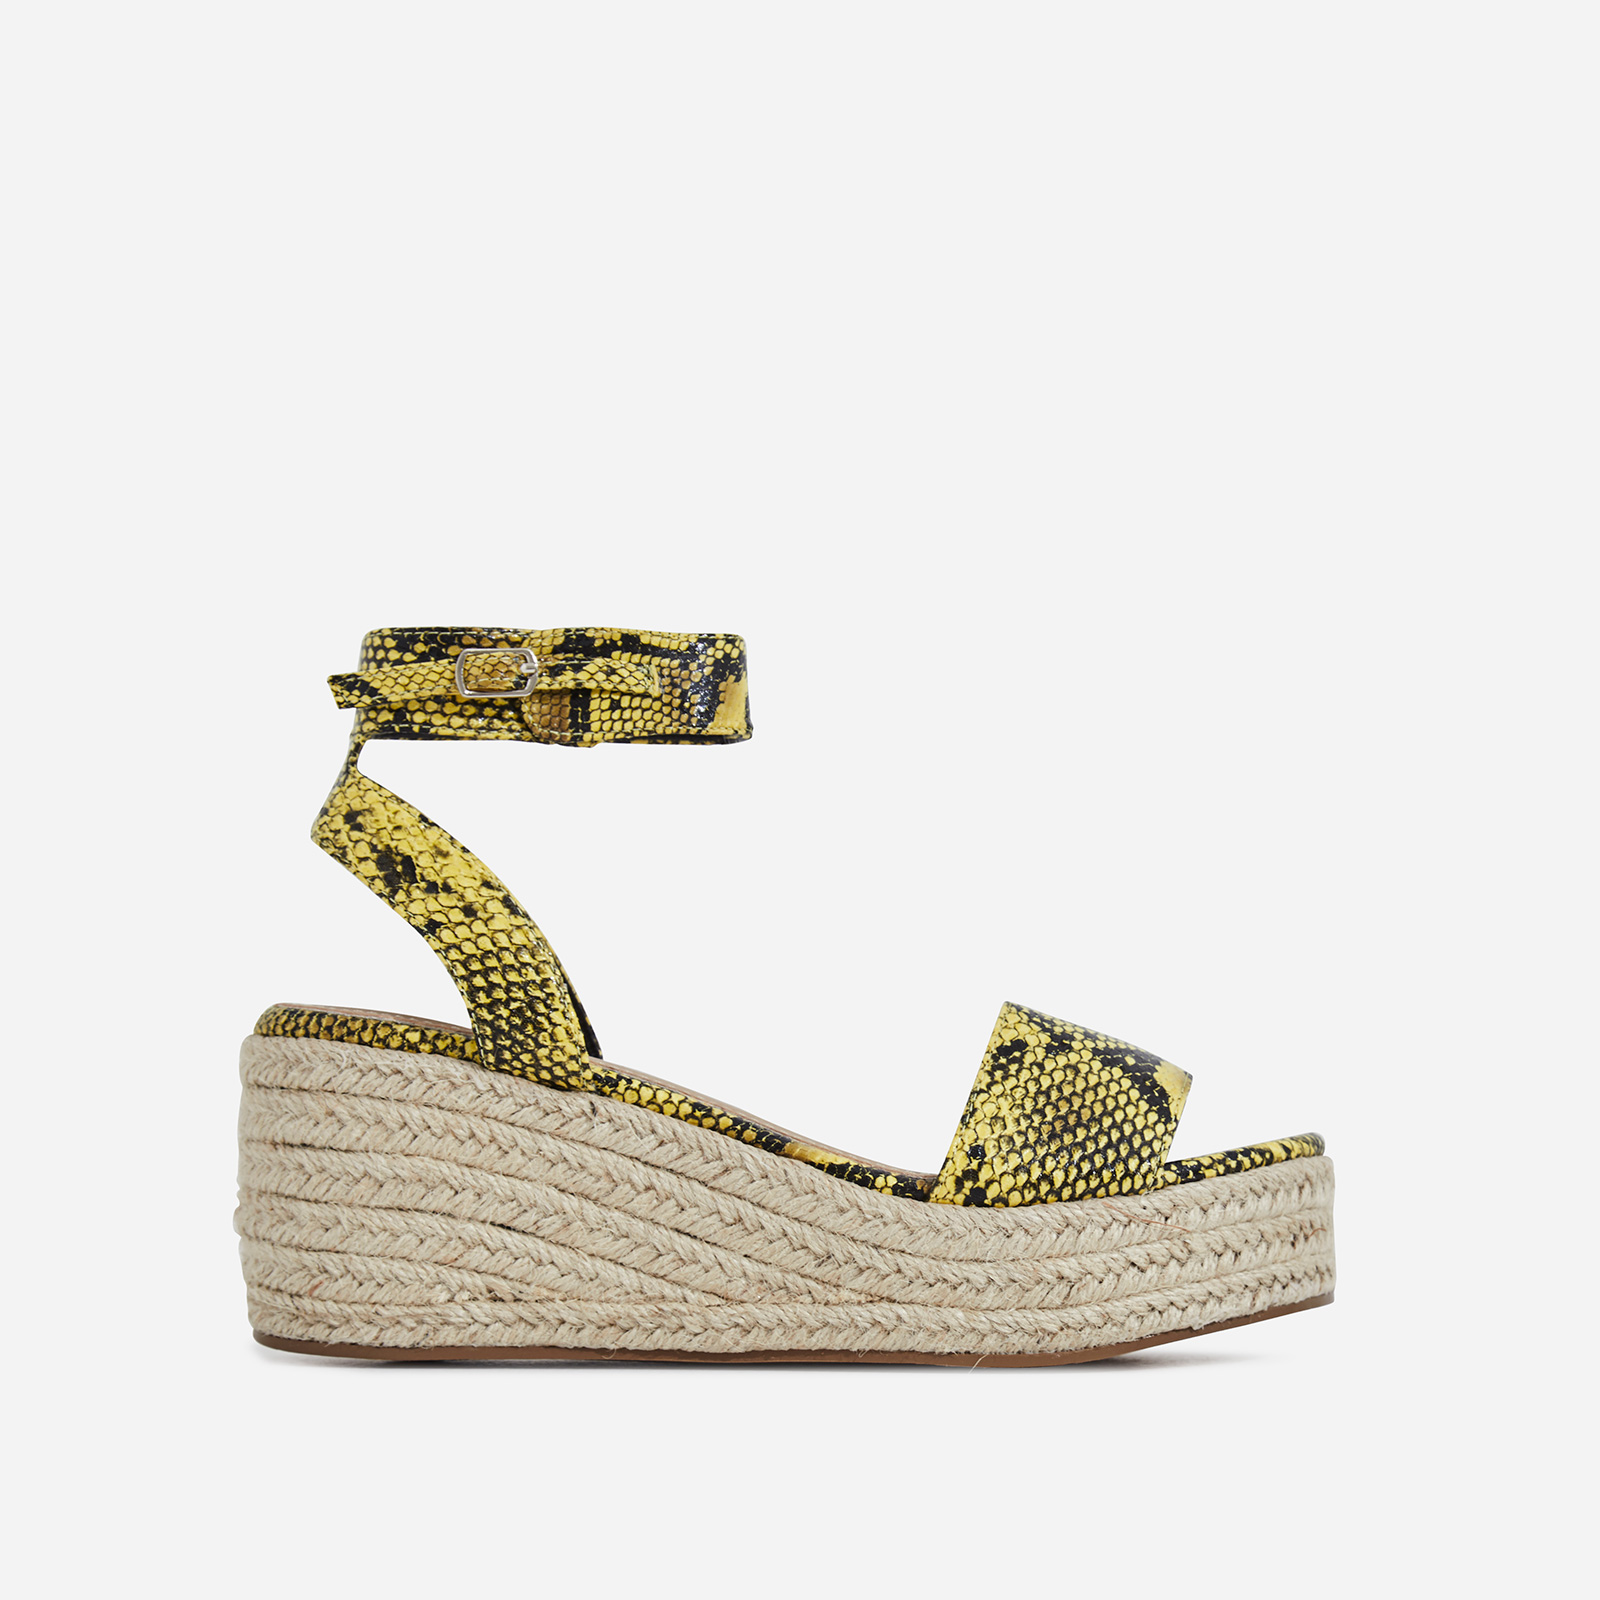 Rossi Espadrille Sandal In Yellow Snake Print Faux Leather